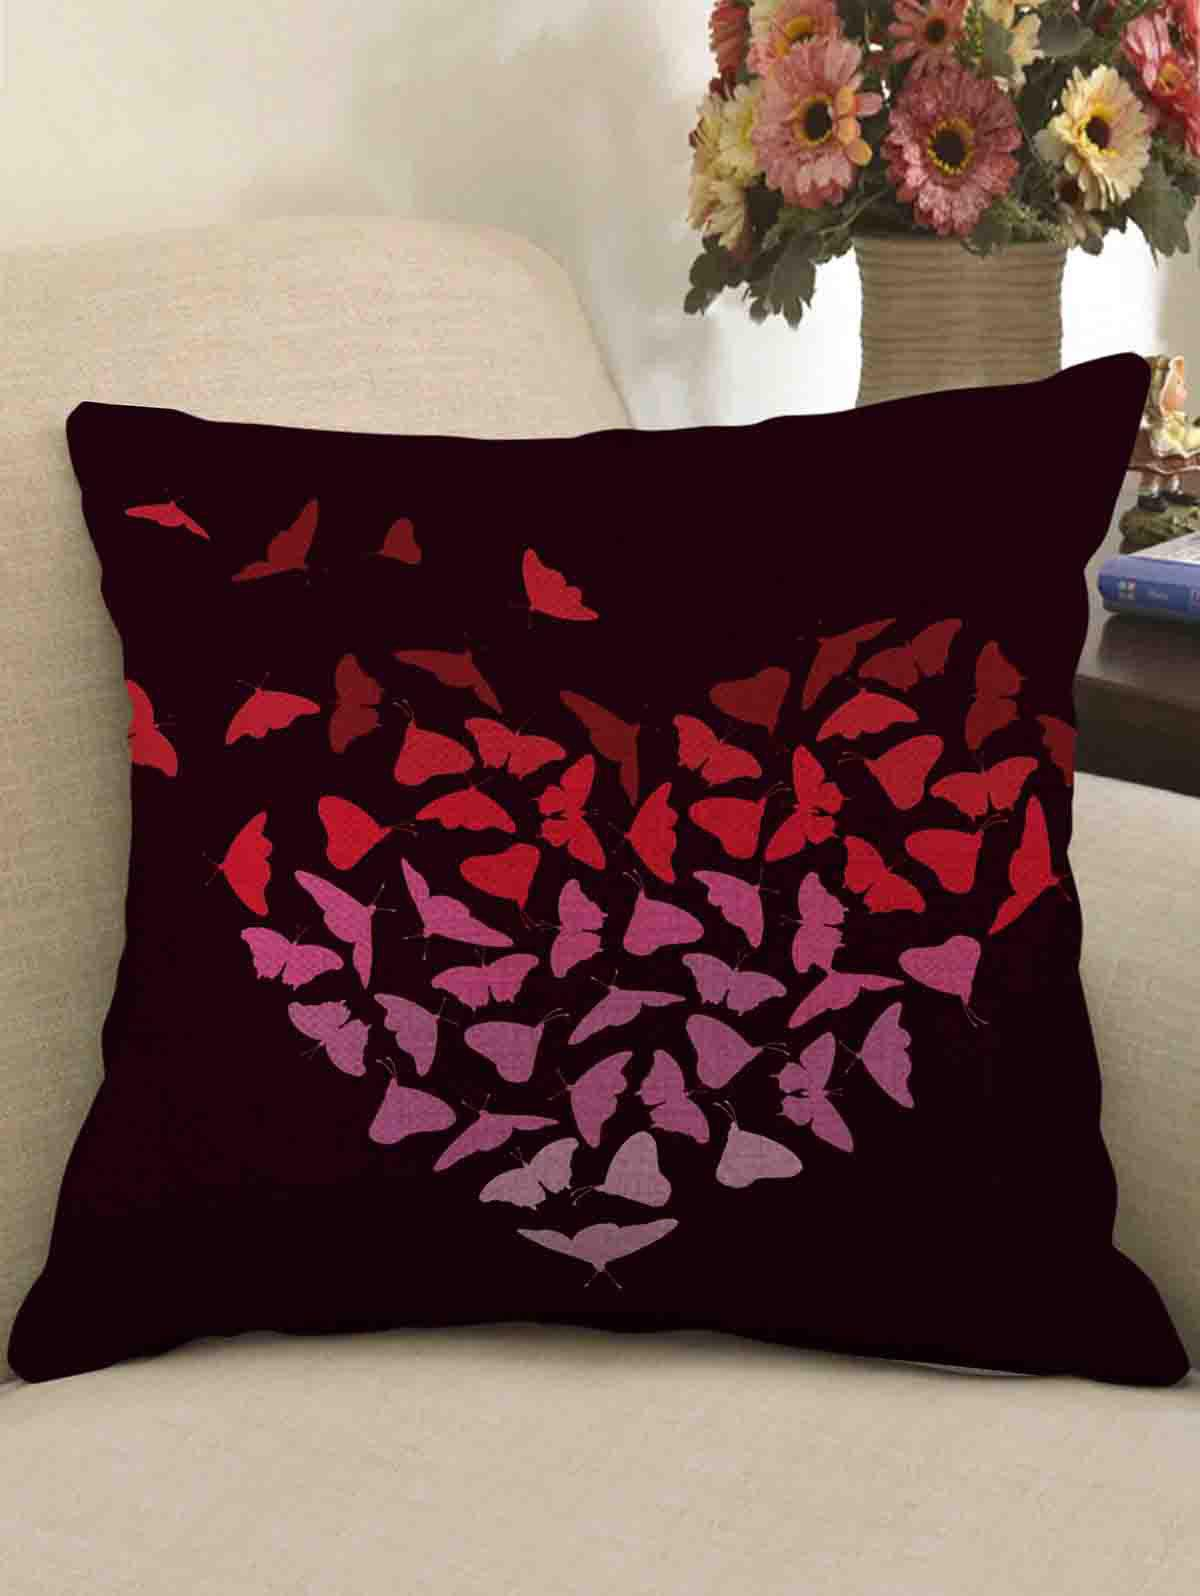 Shops Butterfly Heart Print Decorative Linen Sofa Pillowcase